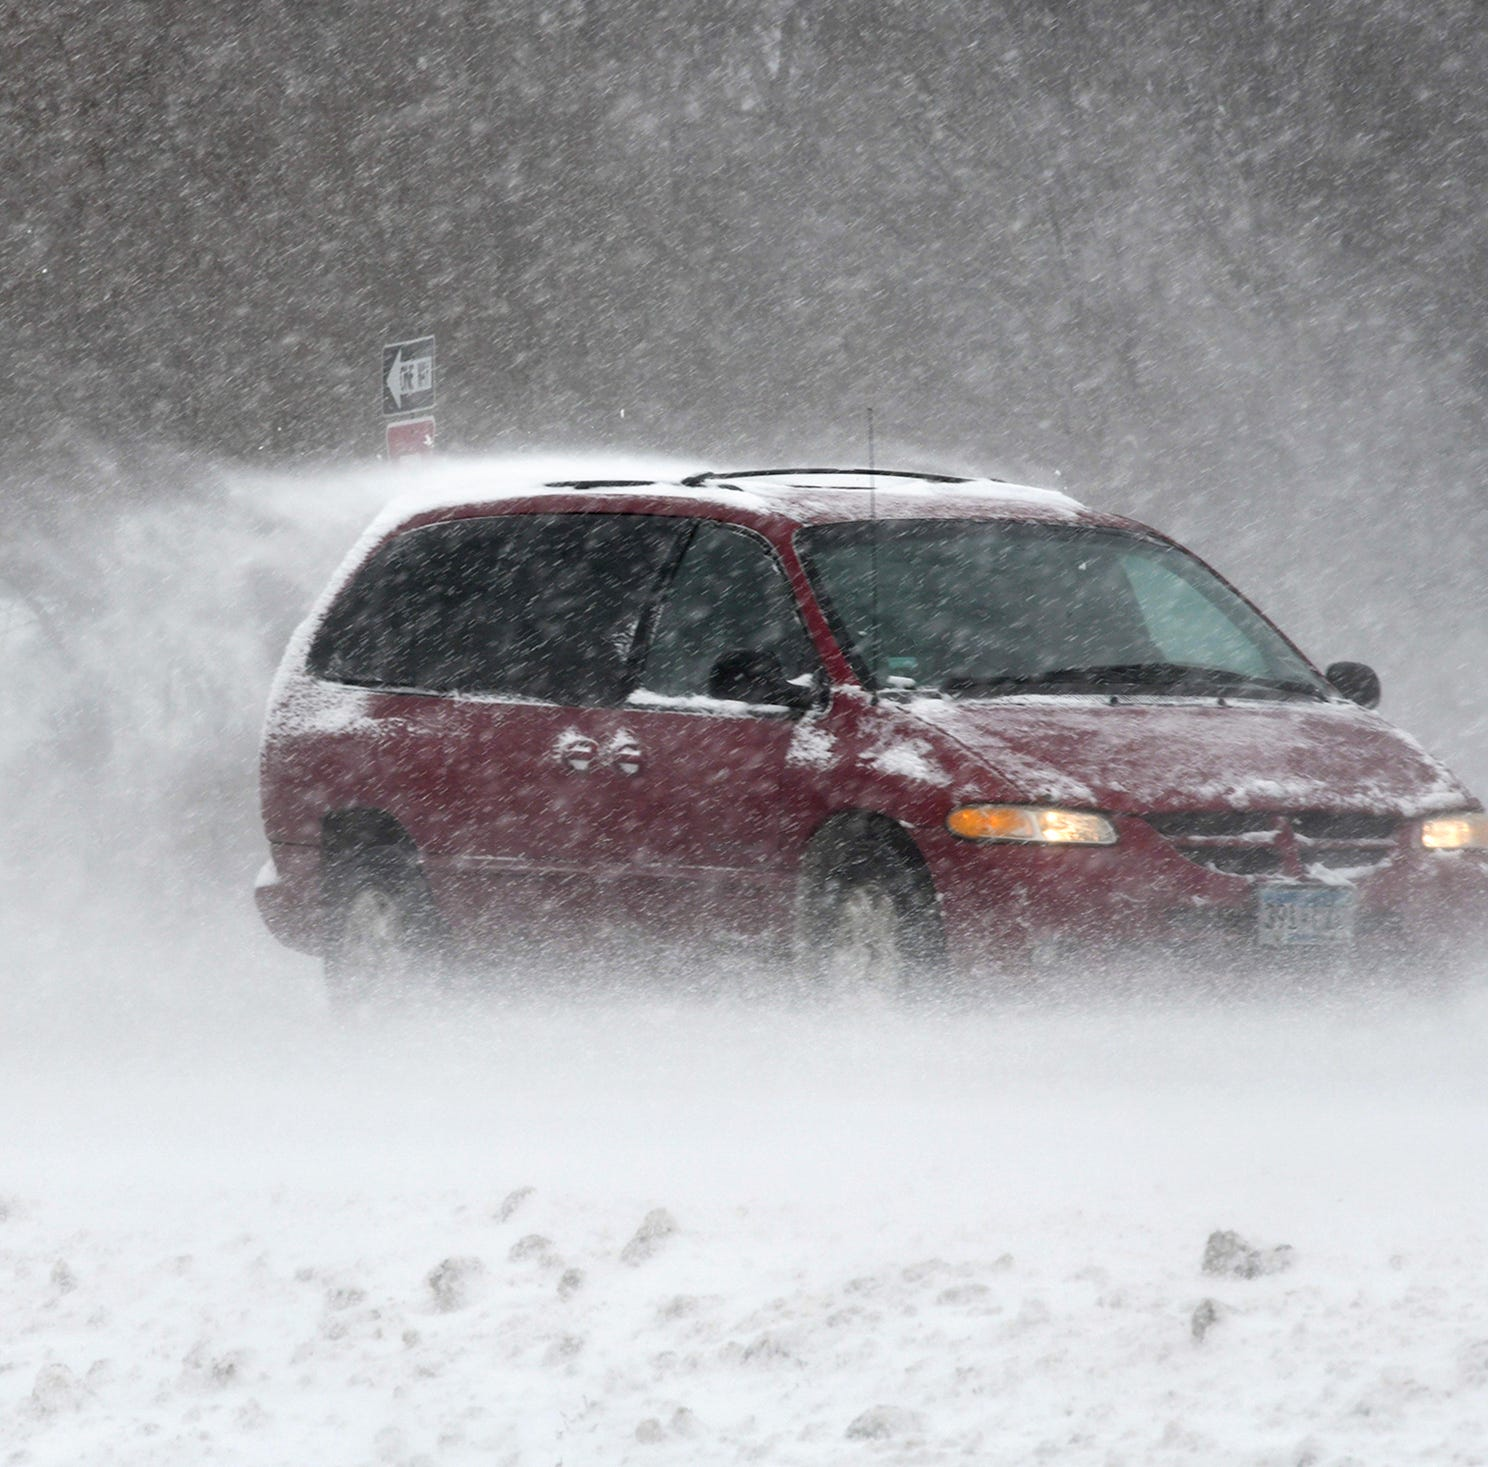 St. Cloud snow forecast: No travel advised on I-94 for all of Stearns County